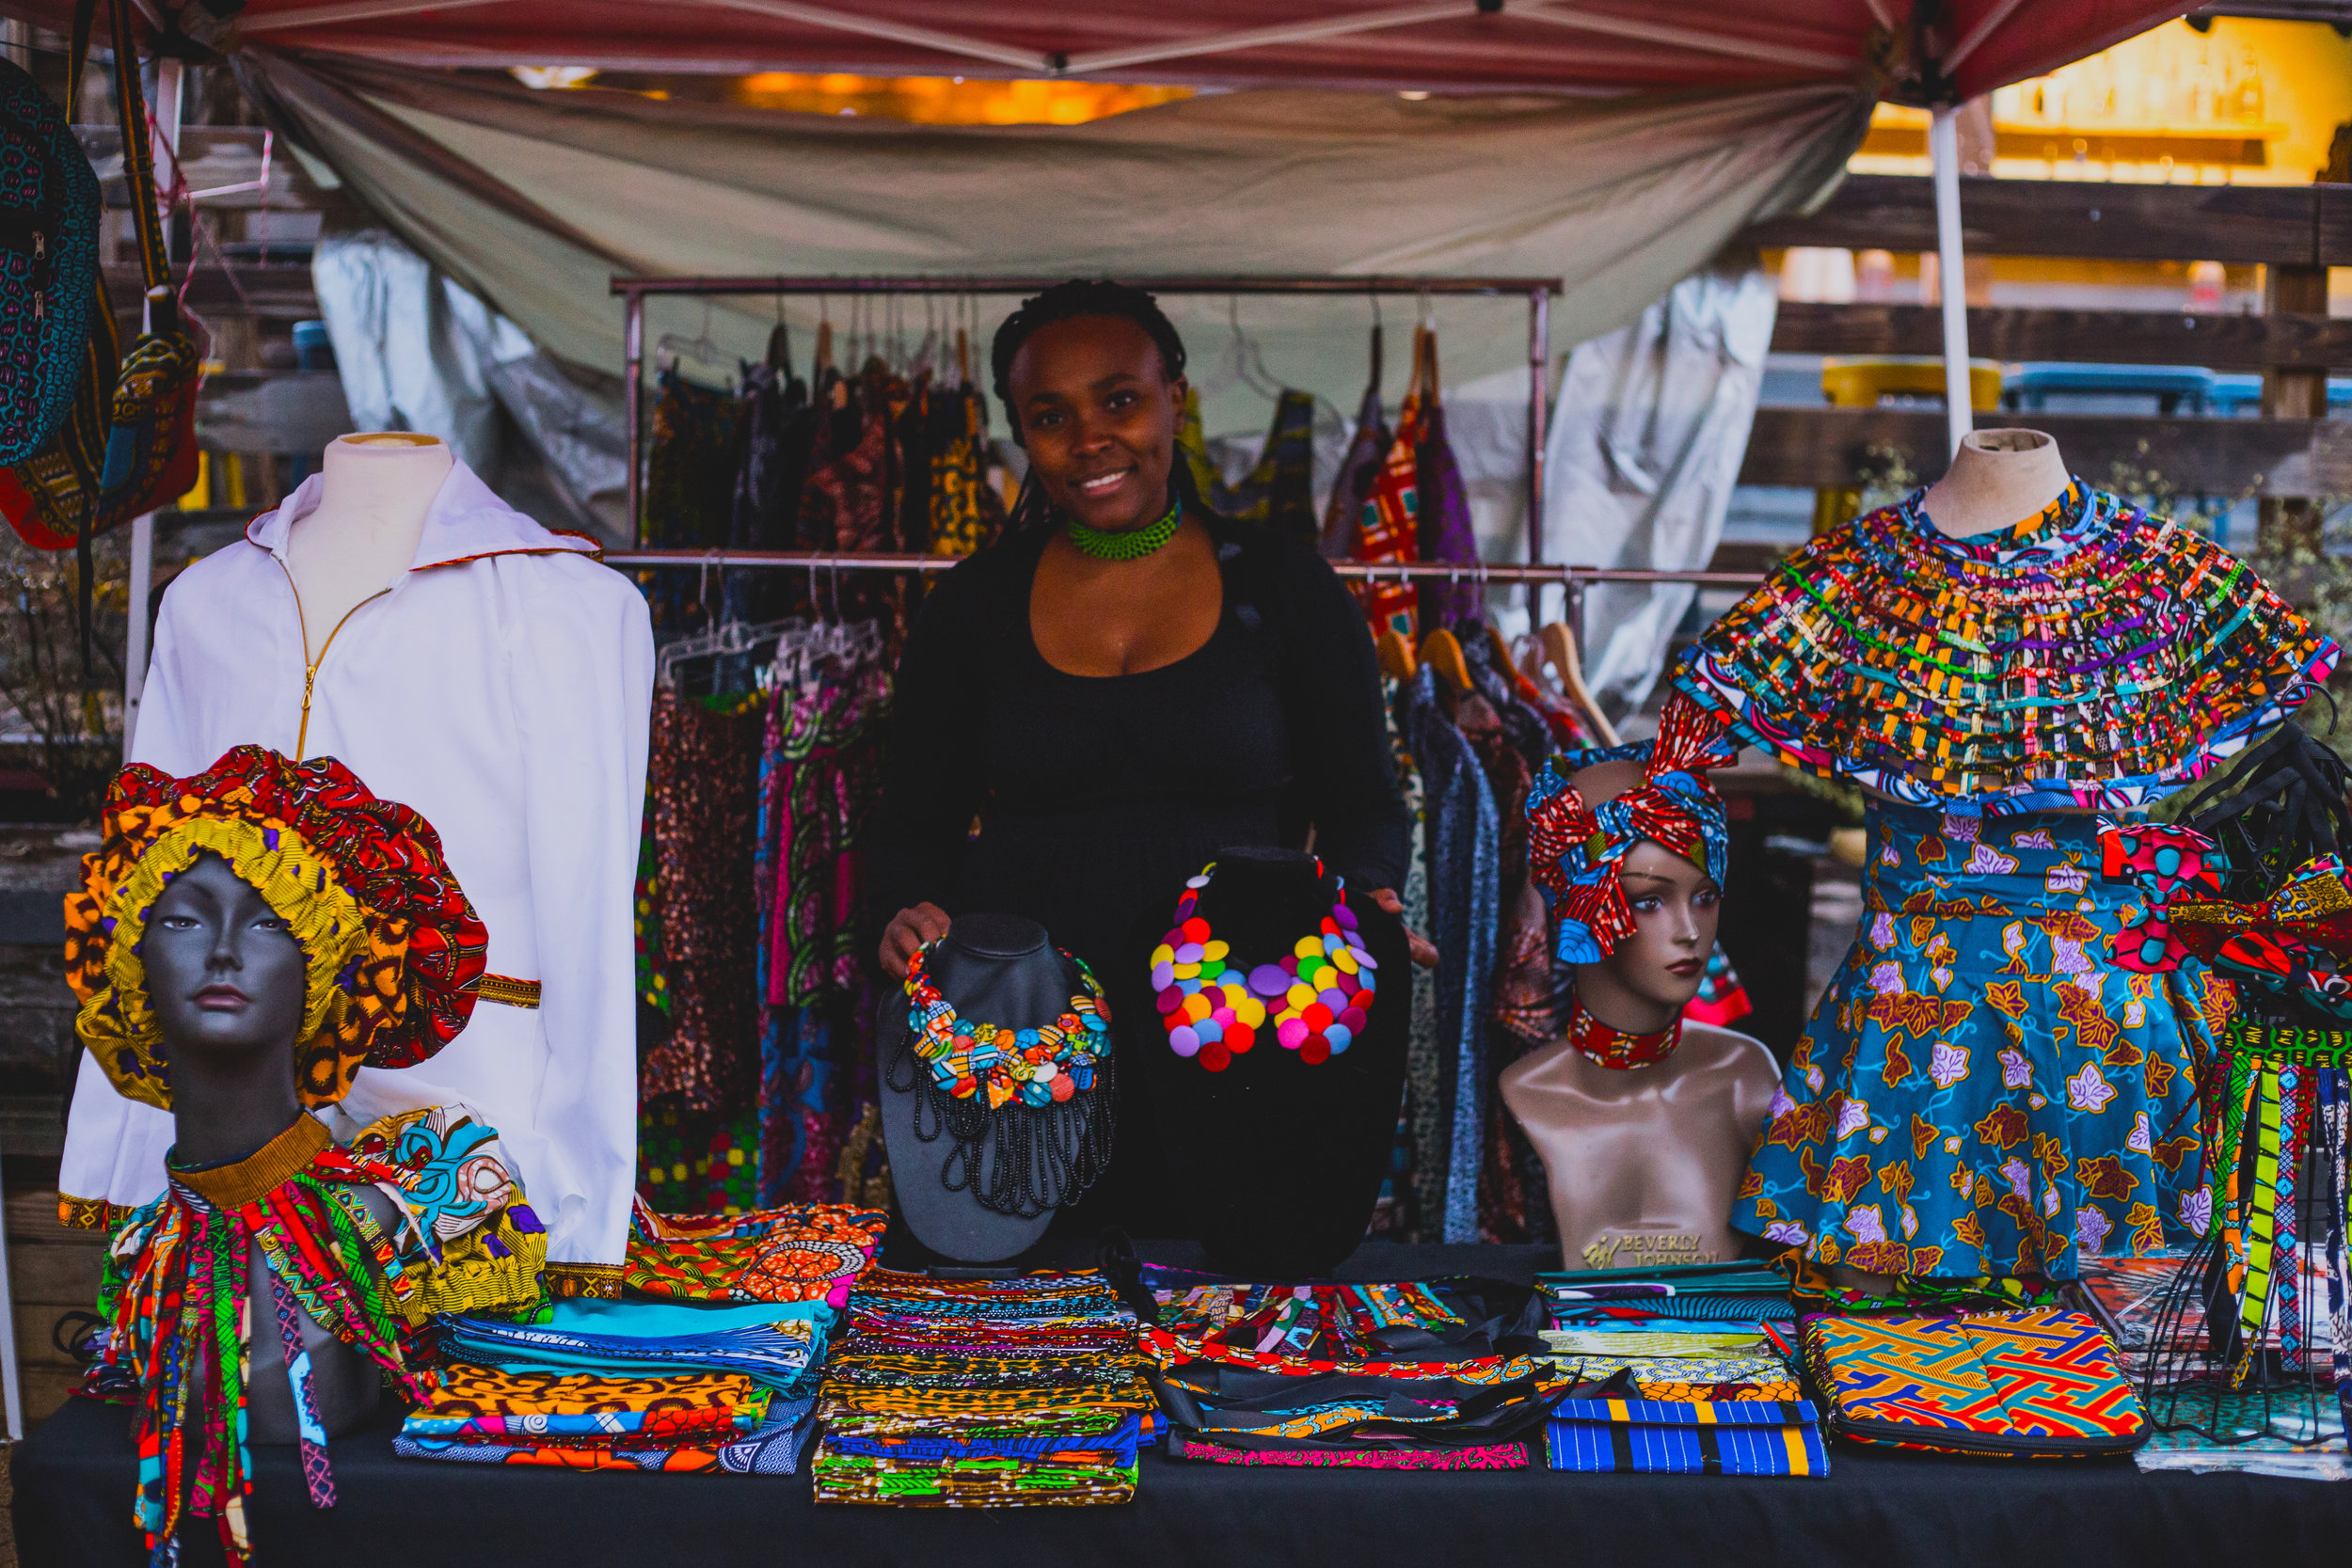 Shavanthe Inc. - Founded by Theo Shayo, Shavanthe is a colorful multicultural clothing brand. Showcasing prints from all over the world, Shavanthe's line features dresses, necklaces, headwraps, hoodies and more. You can support Theo by—duh—purchasing her clothes!